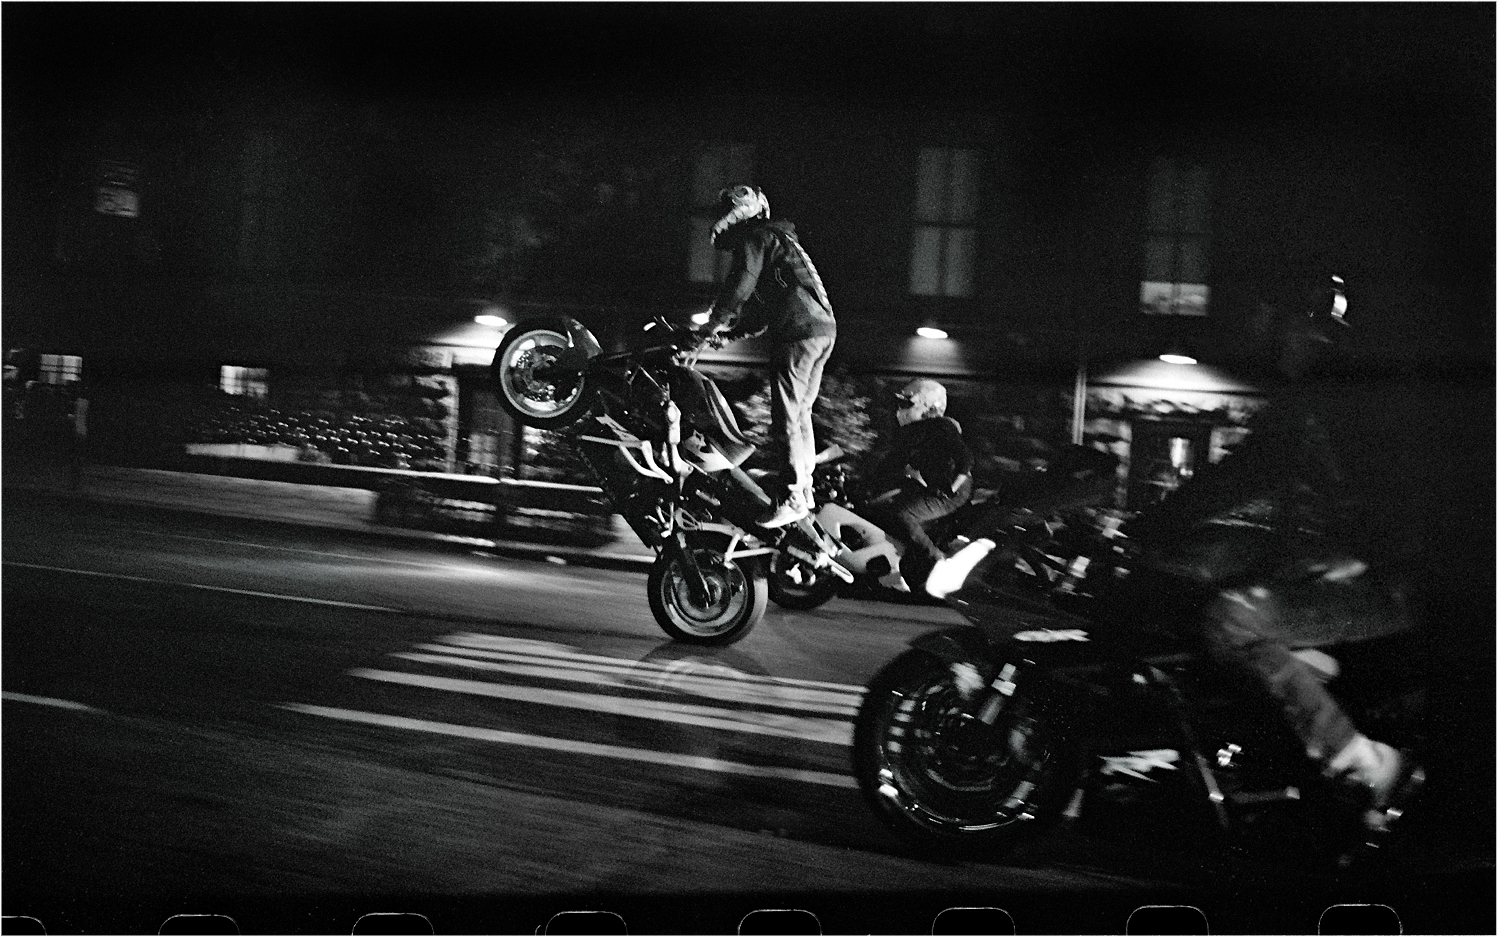 Motorcycle Wheelie 2013 Copy Black And White Street